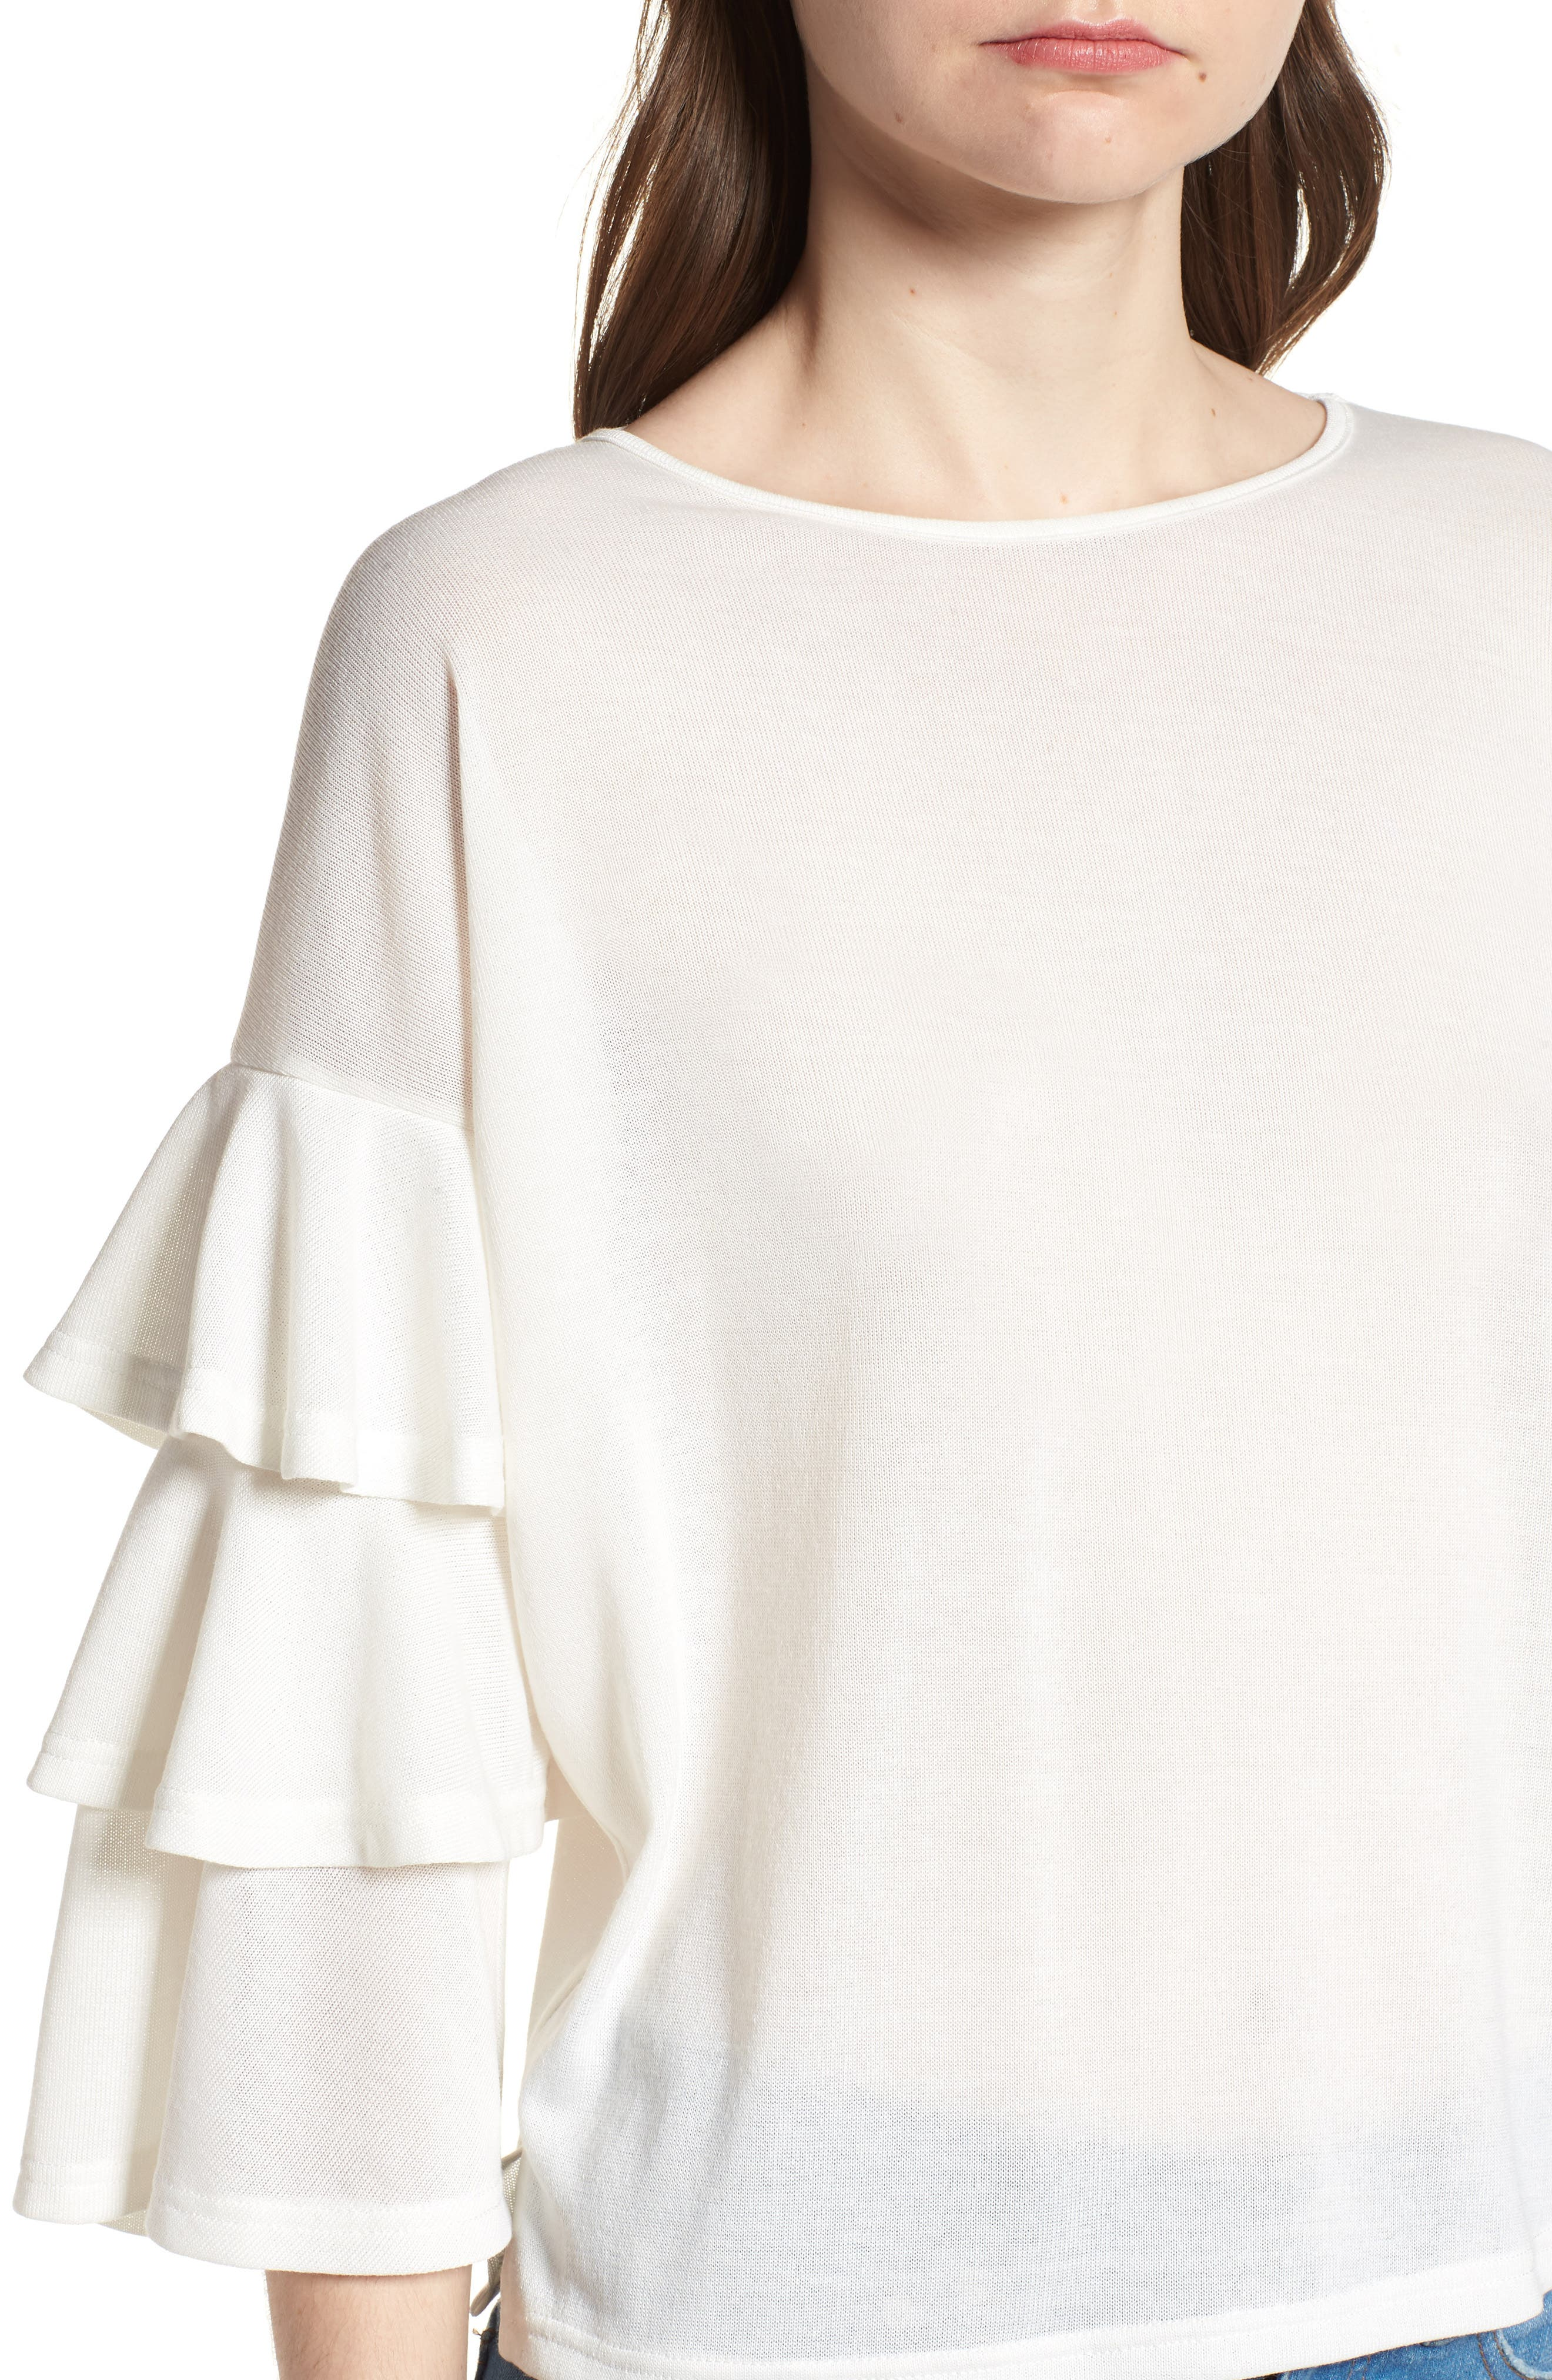 Bishop + Young Katie Tiered Ruffle Sleeve Top,                             Alternate thumbnail 4, color,                             WHITE